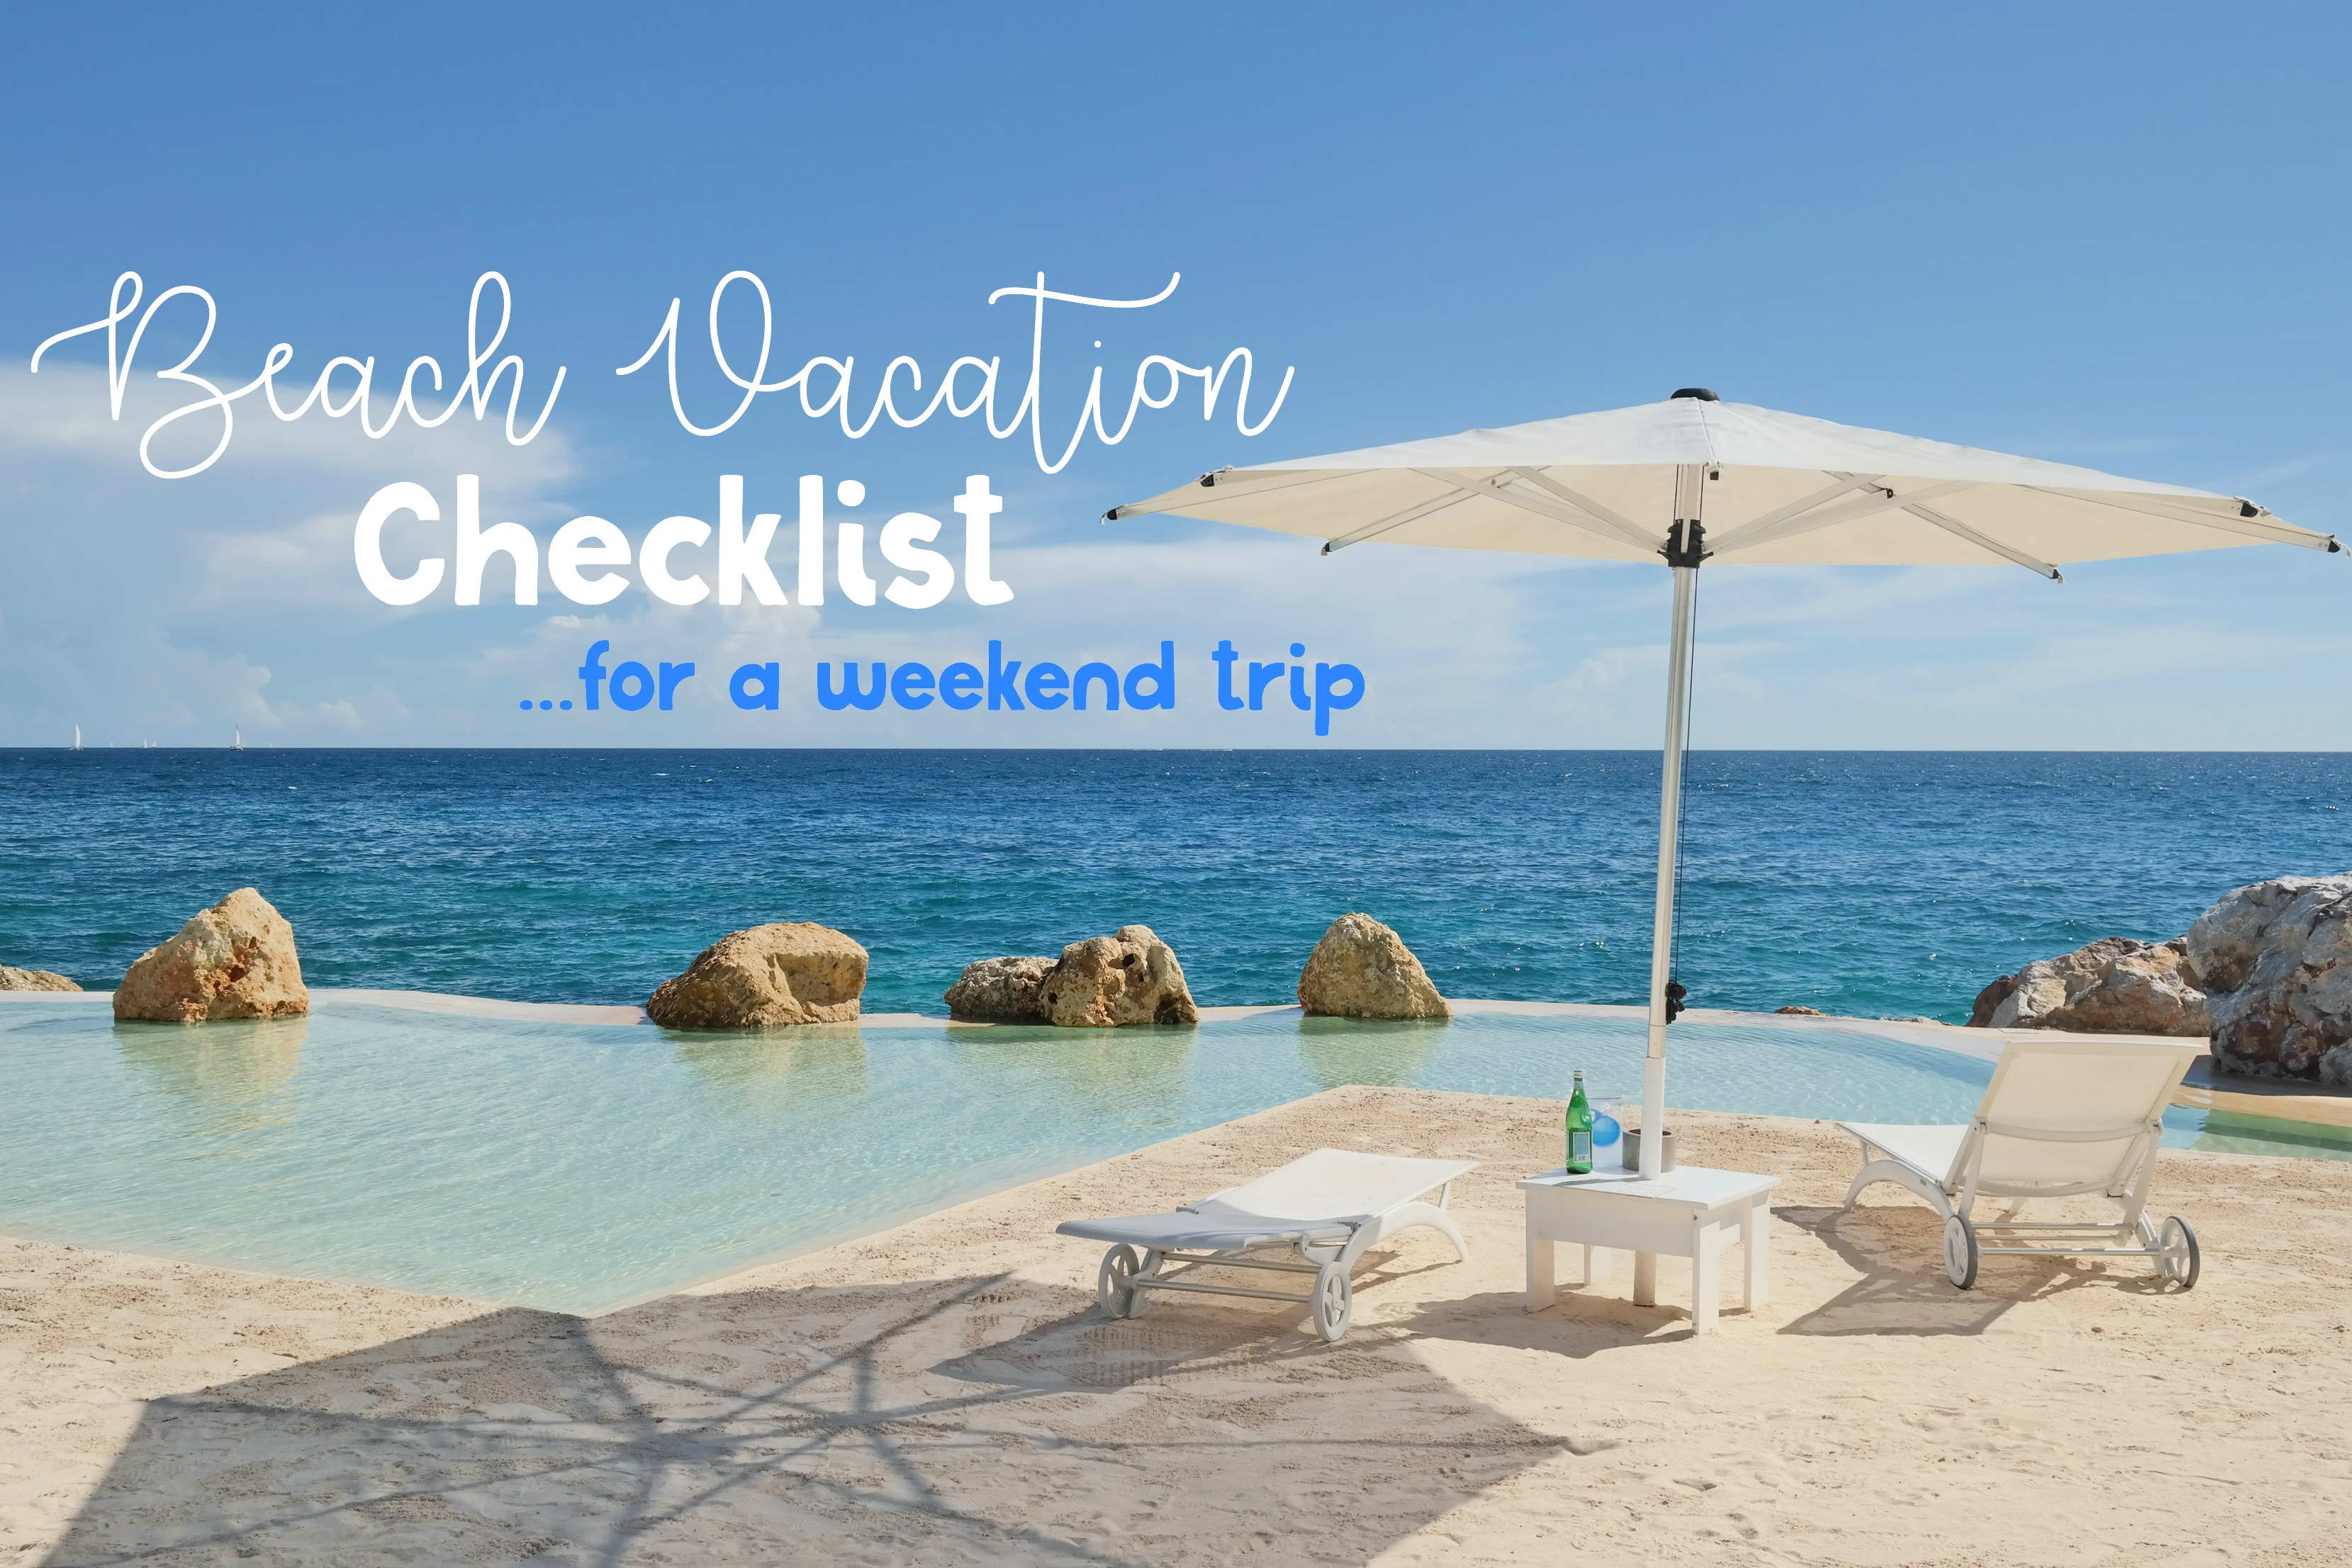 beach vacation checklist what to bring for a weekend trip